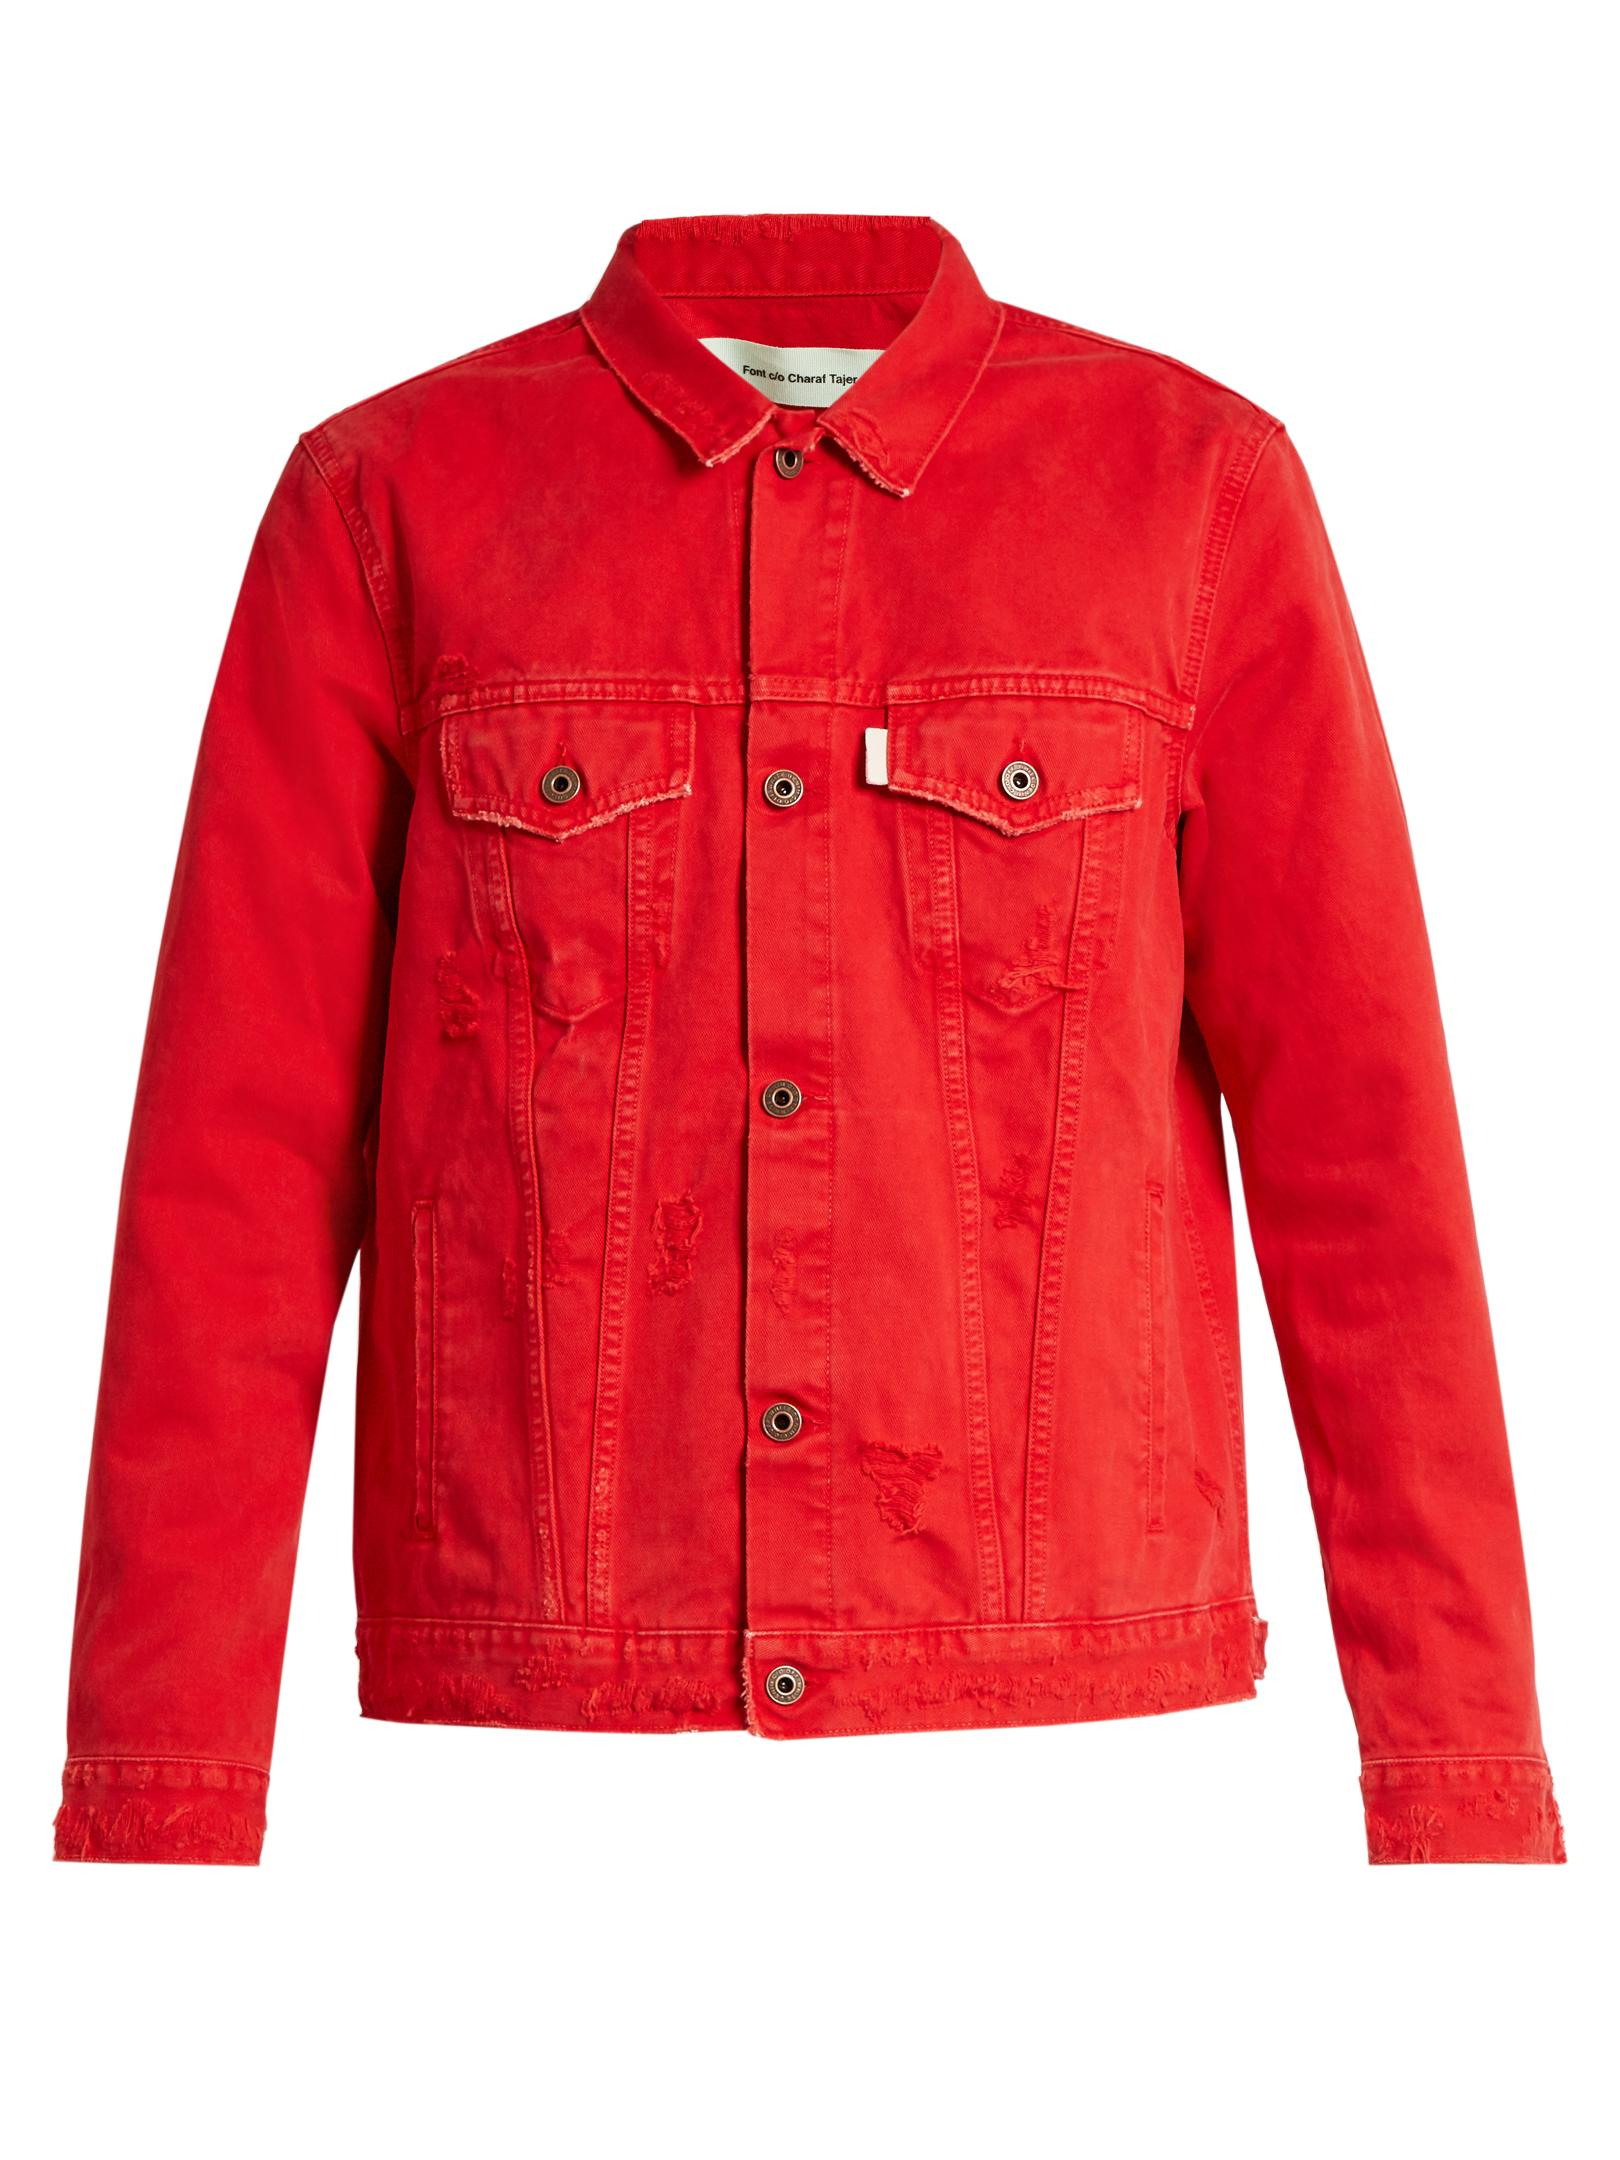 Off White C O Virgil Abloh The End Denim Jacket In Red For